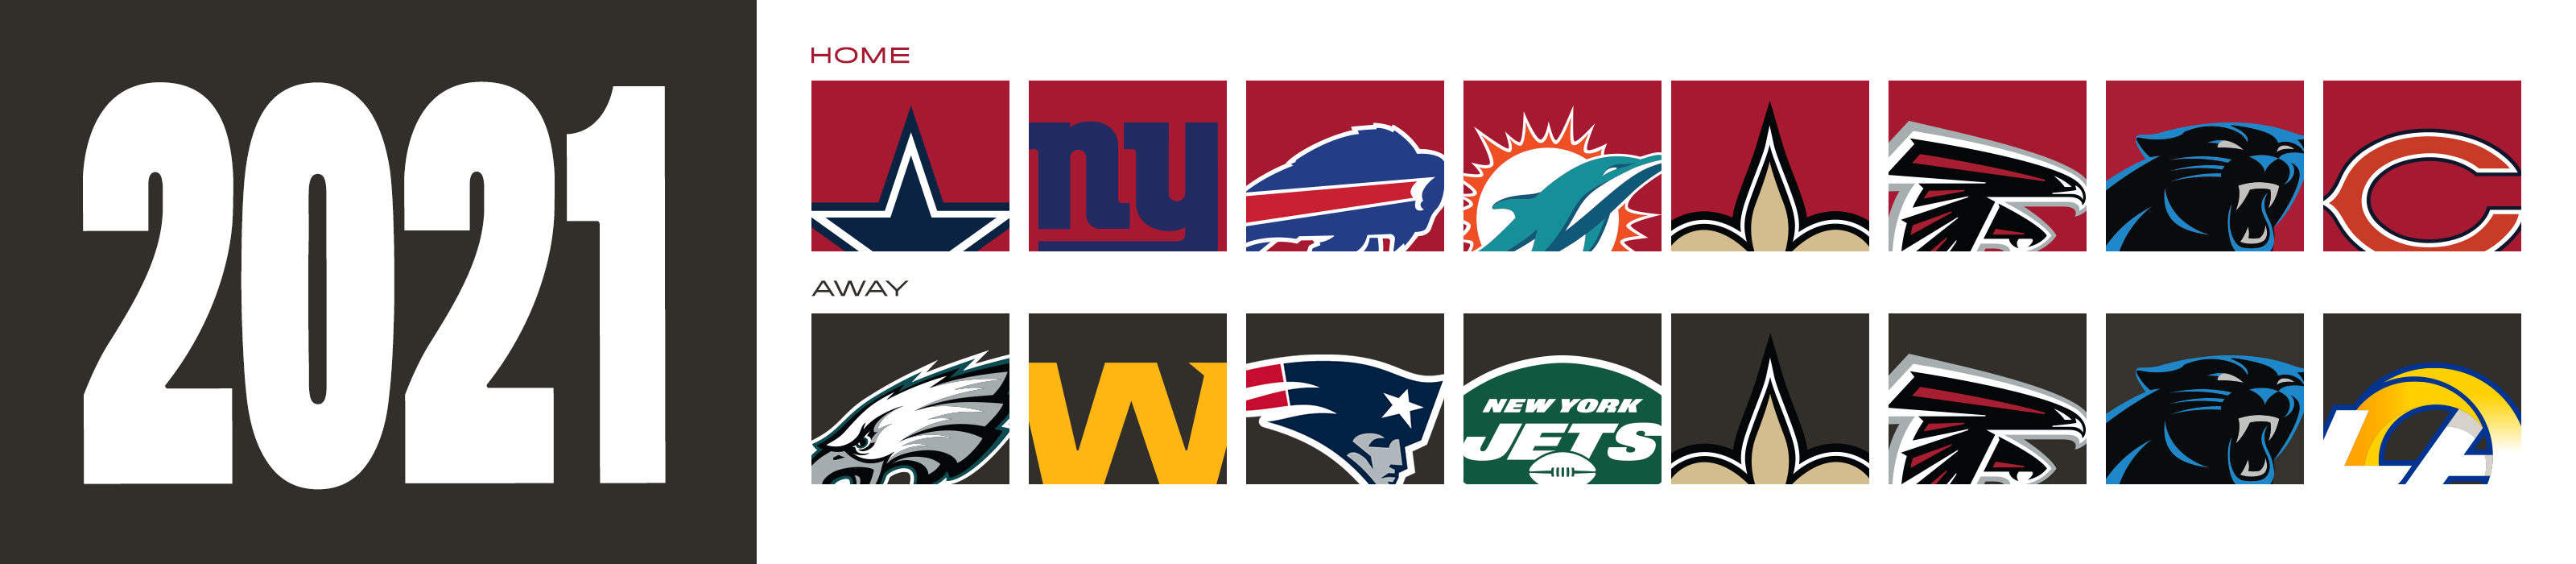 2021 Opponents - home - cowboys, giants, bills, dolphins, saints, falcons, panthers, bears away- eagles, washington, patriots, jets, saints, falcons, panthers, rams